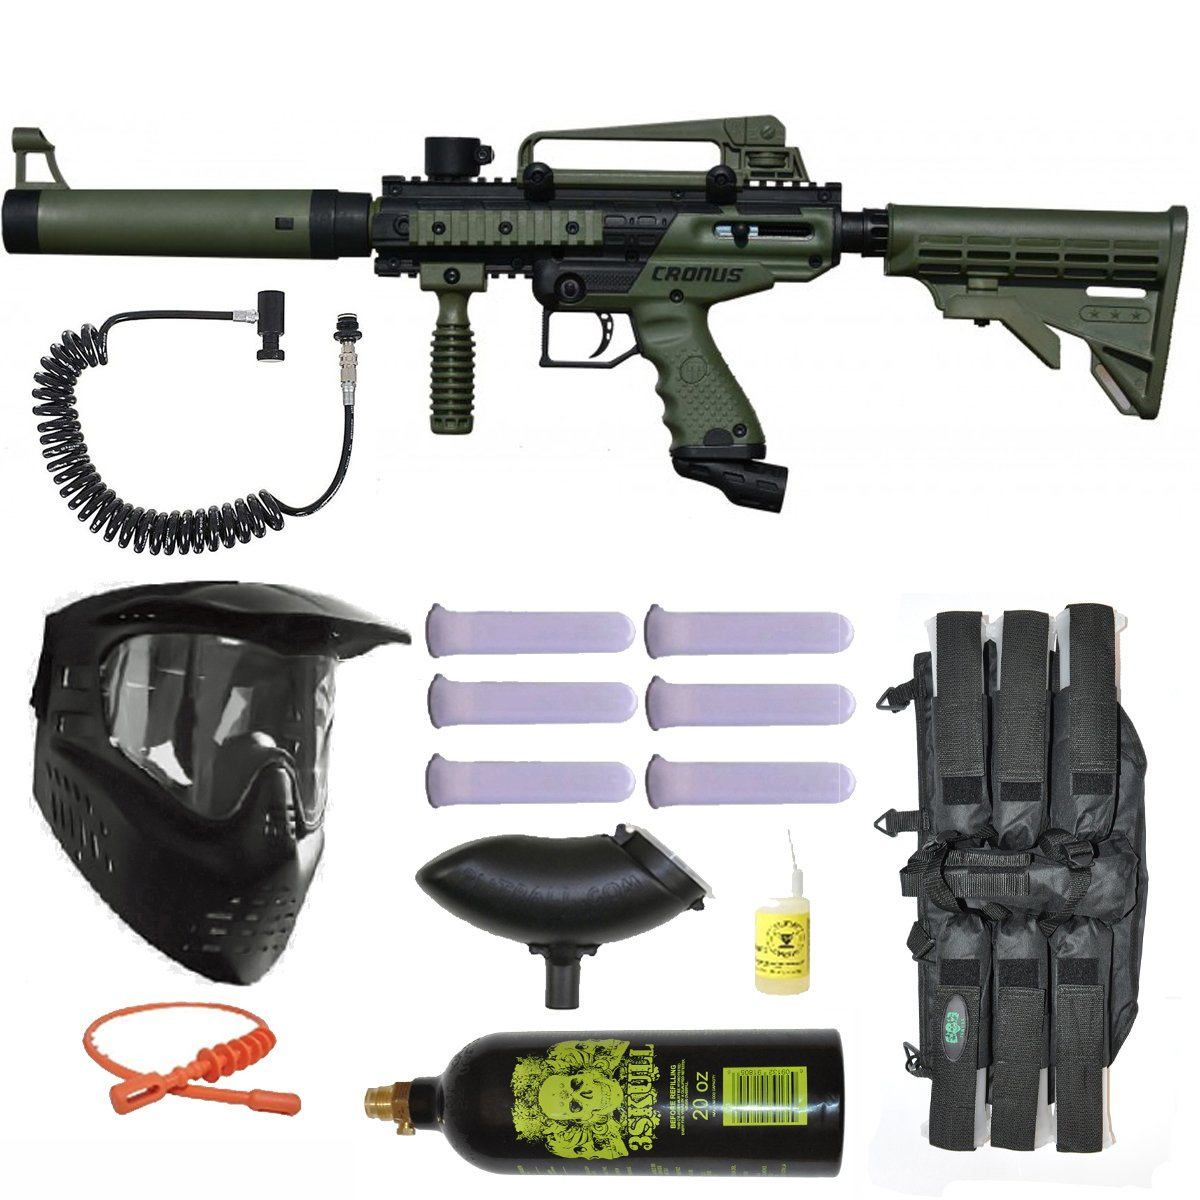 Tippmann Cronus Tactical Olive Paintball Marker Gun Power Package by Tippmann